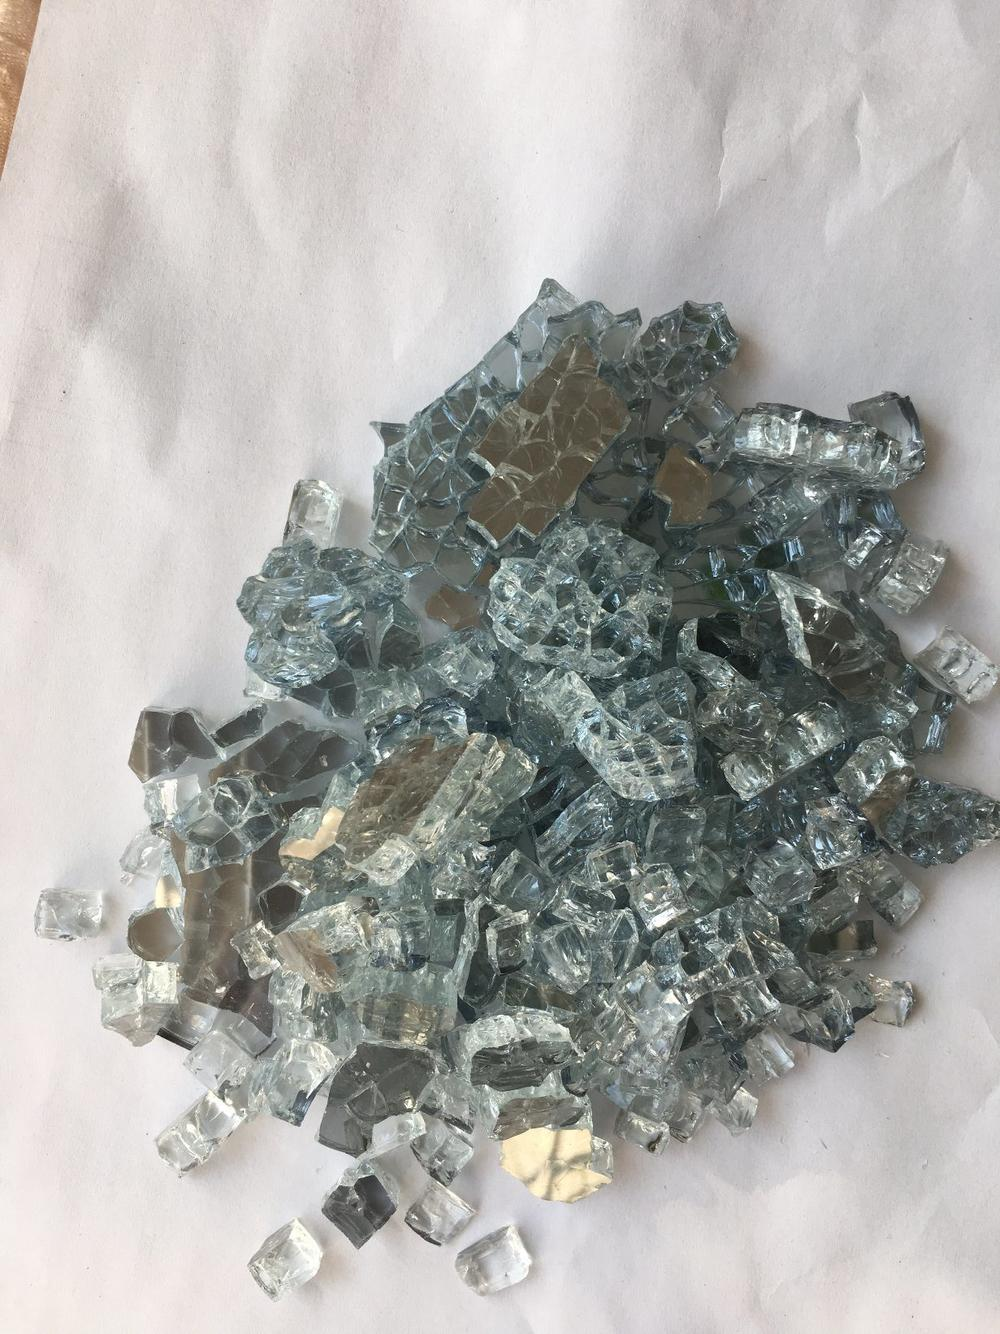 High Quality Crushed Mirror Chips